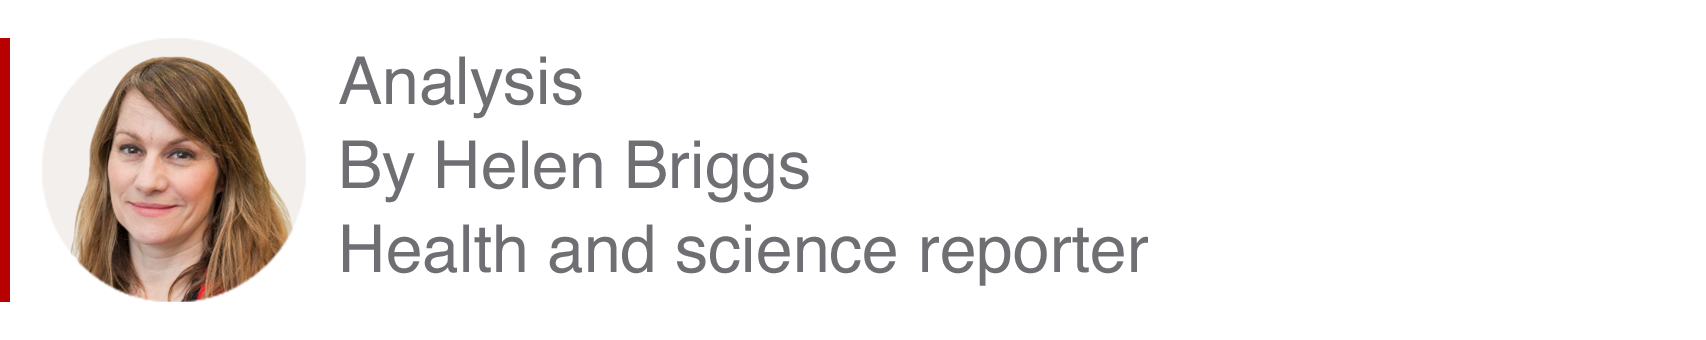 Analysis box by Helen Briggs, health and science reporter